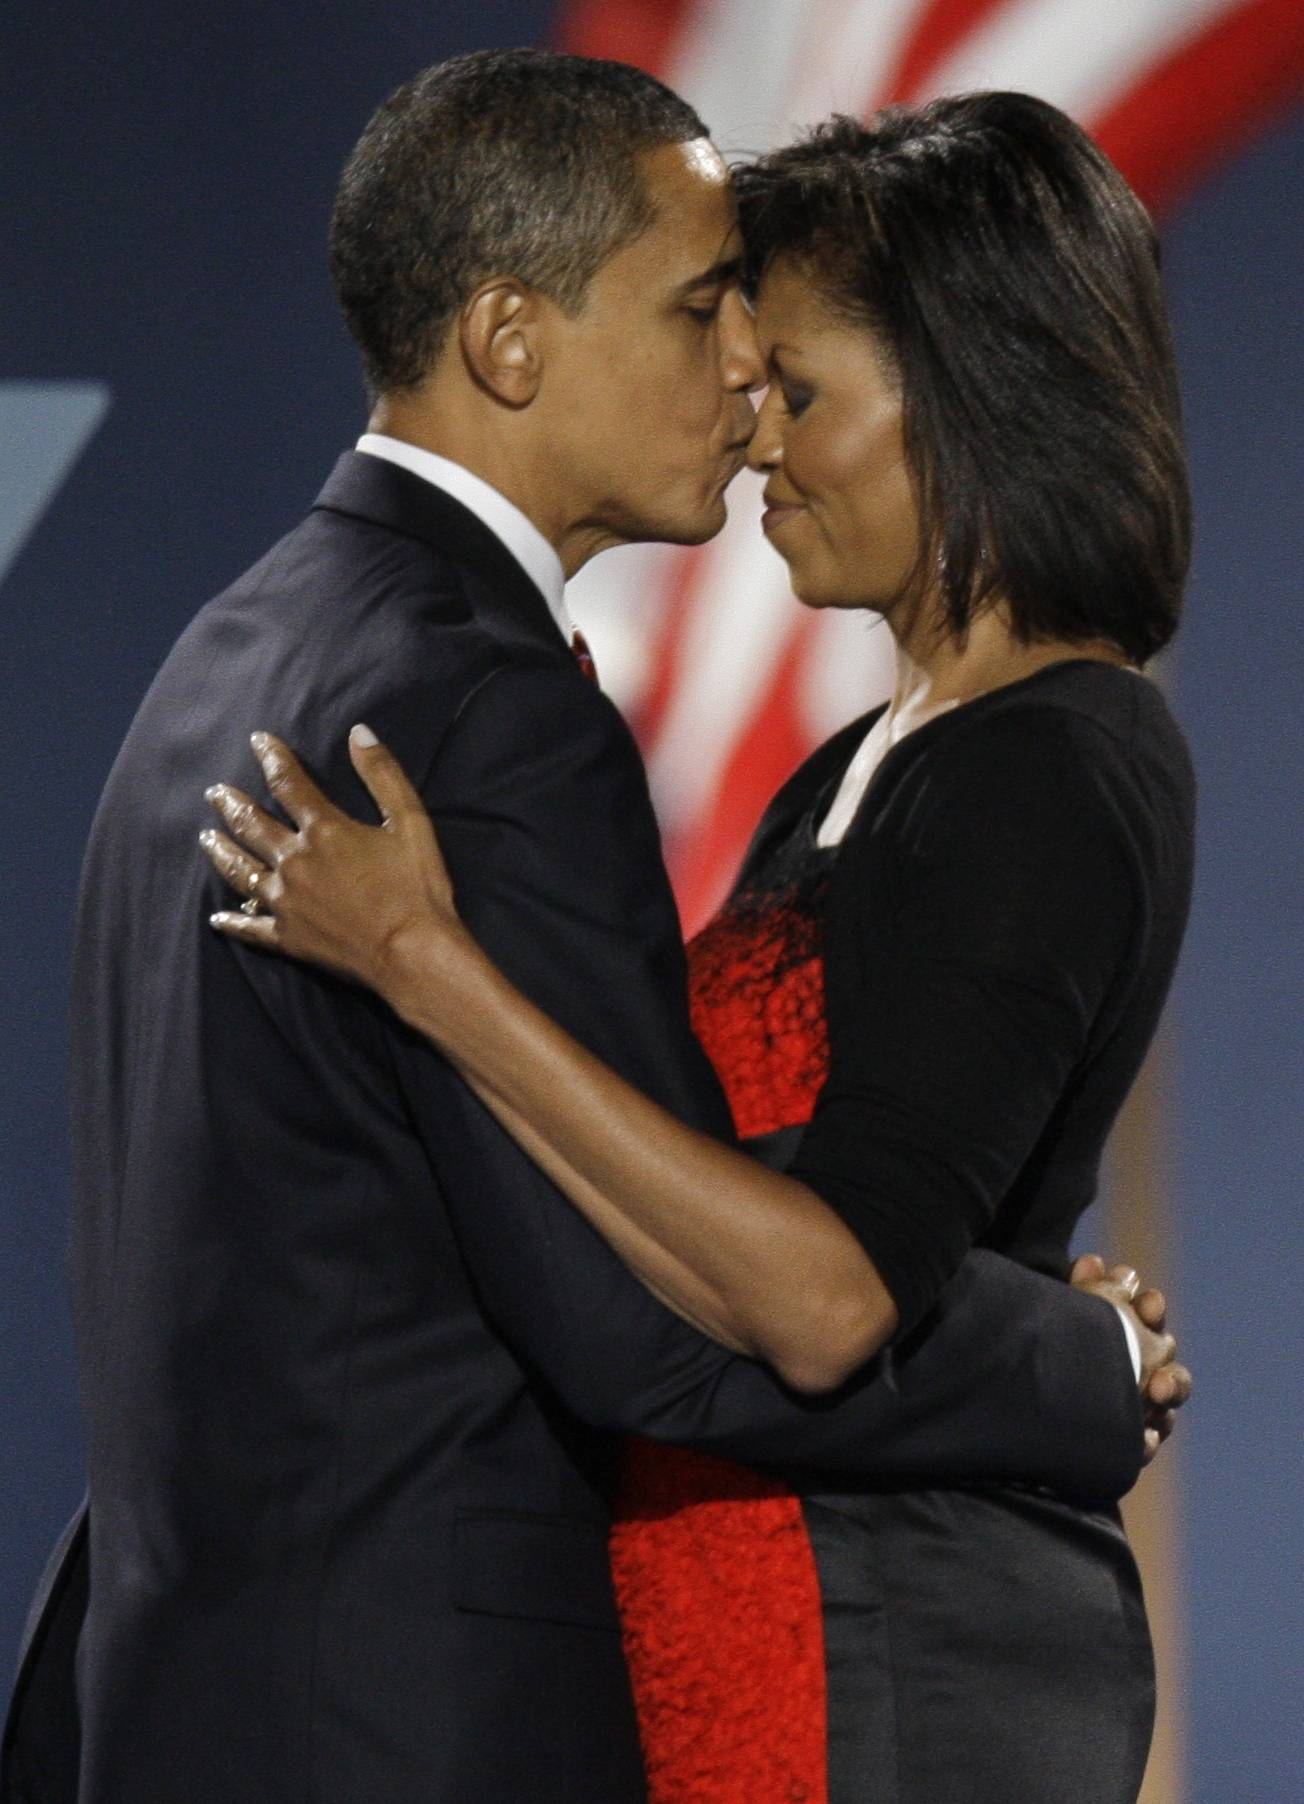 President-elect Barack Obama kisses his wife, Michelle, at his 2008 Election Night party at Grant Park in Chicago.